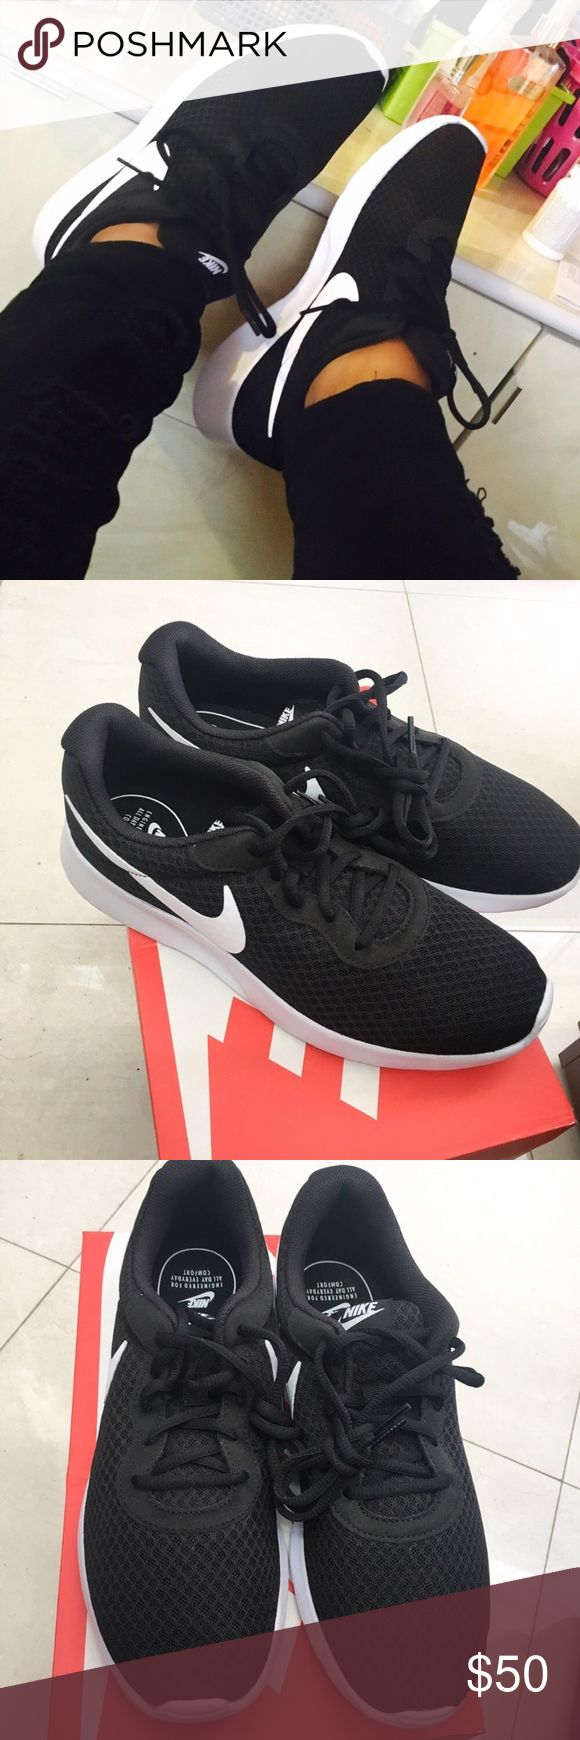 FIRM PRICE Nike Tanjun 🙅NO LOWEST🙅NO TRADES.  DISCLAIMER: SIZE IS A MENS 8.5 FITS WOMEN 10 (SOLD SEVERAL), as they run a half size small.  TRIED TESTED & TRUE.  Sporty kicks, summer time cute & comfortable, would look great with light blue or blacks jeans. Questions welcomed. Nike Shoes Sneakers